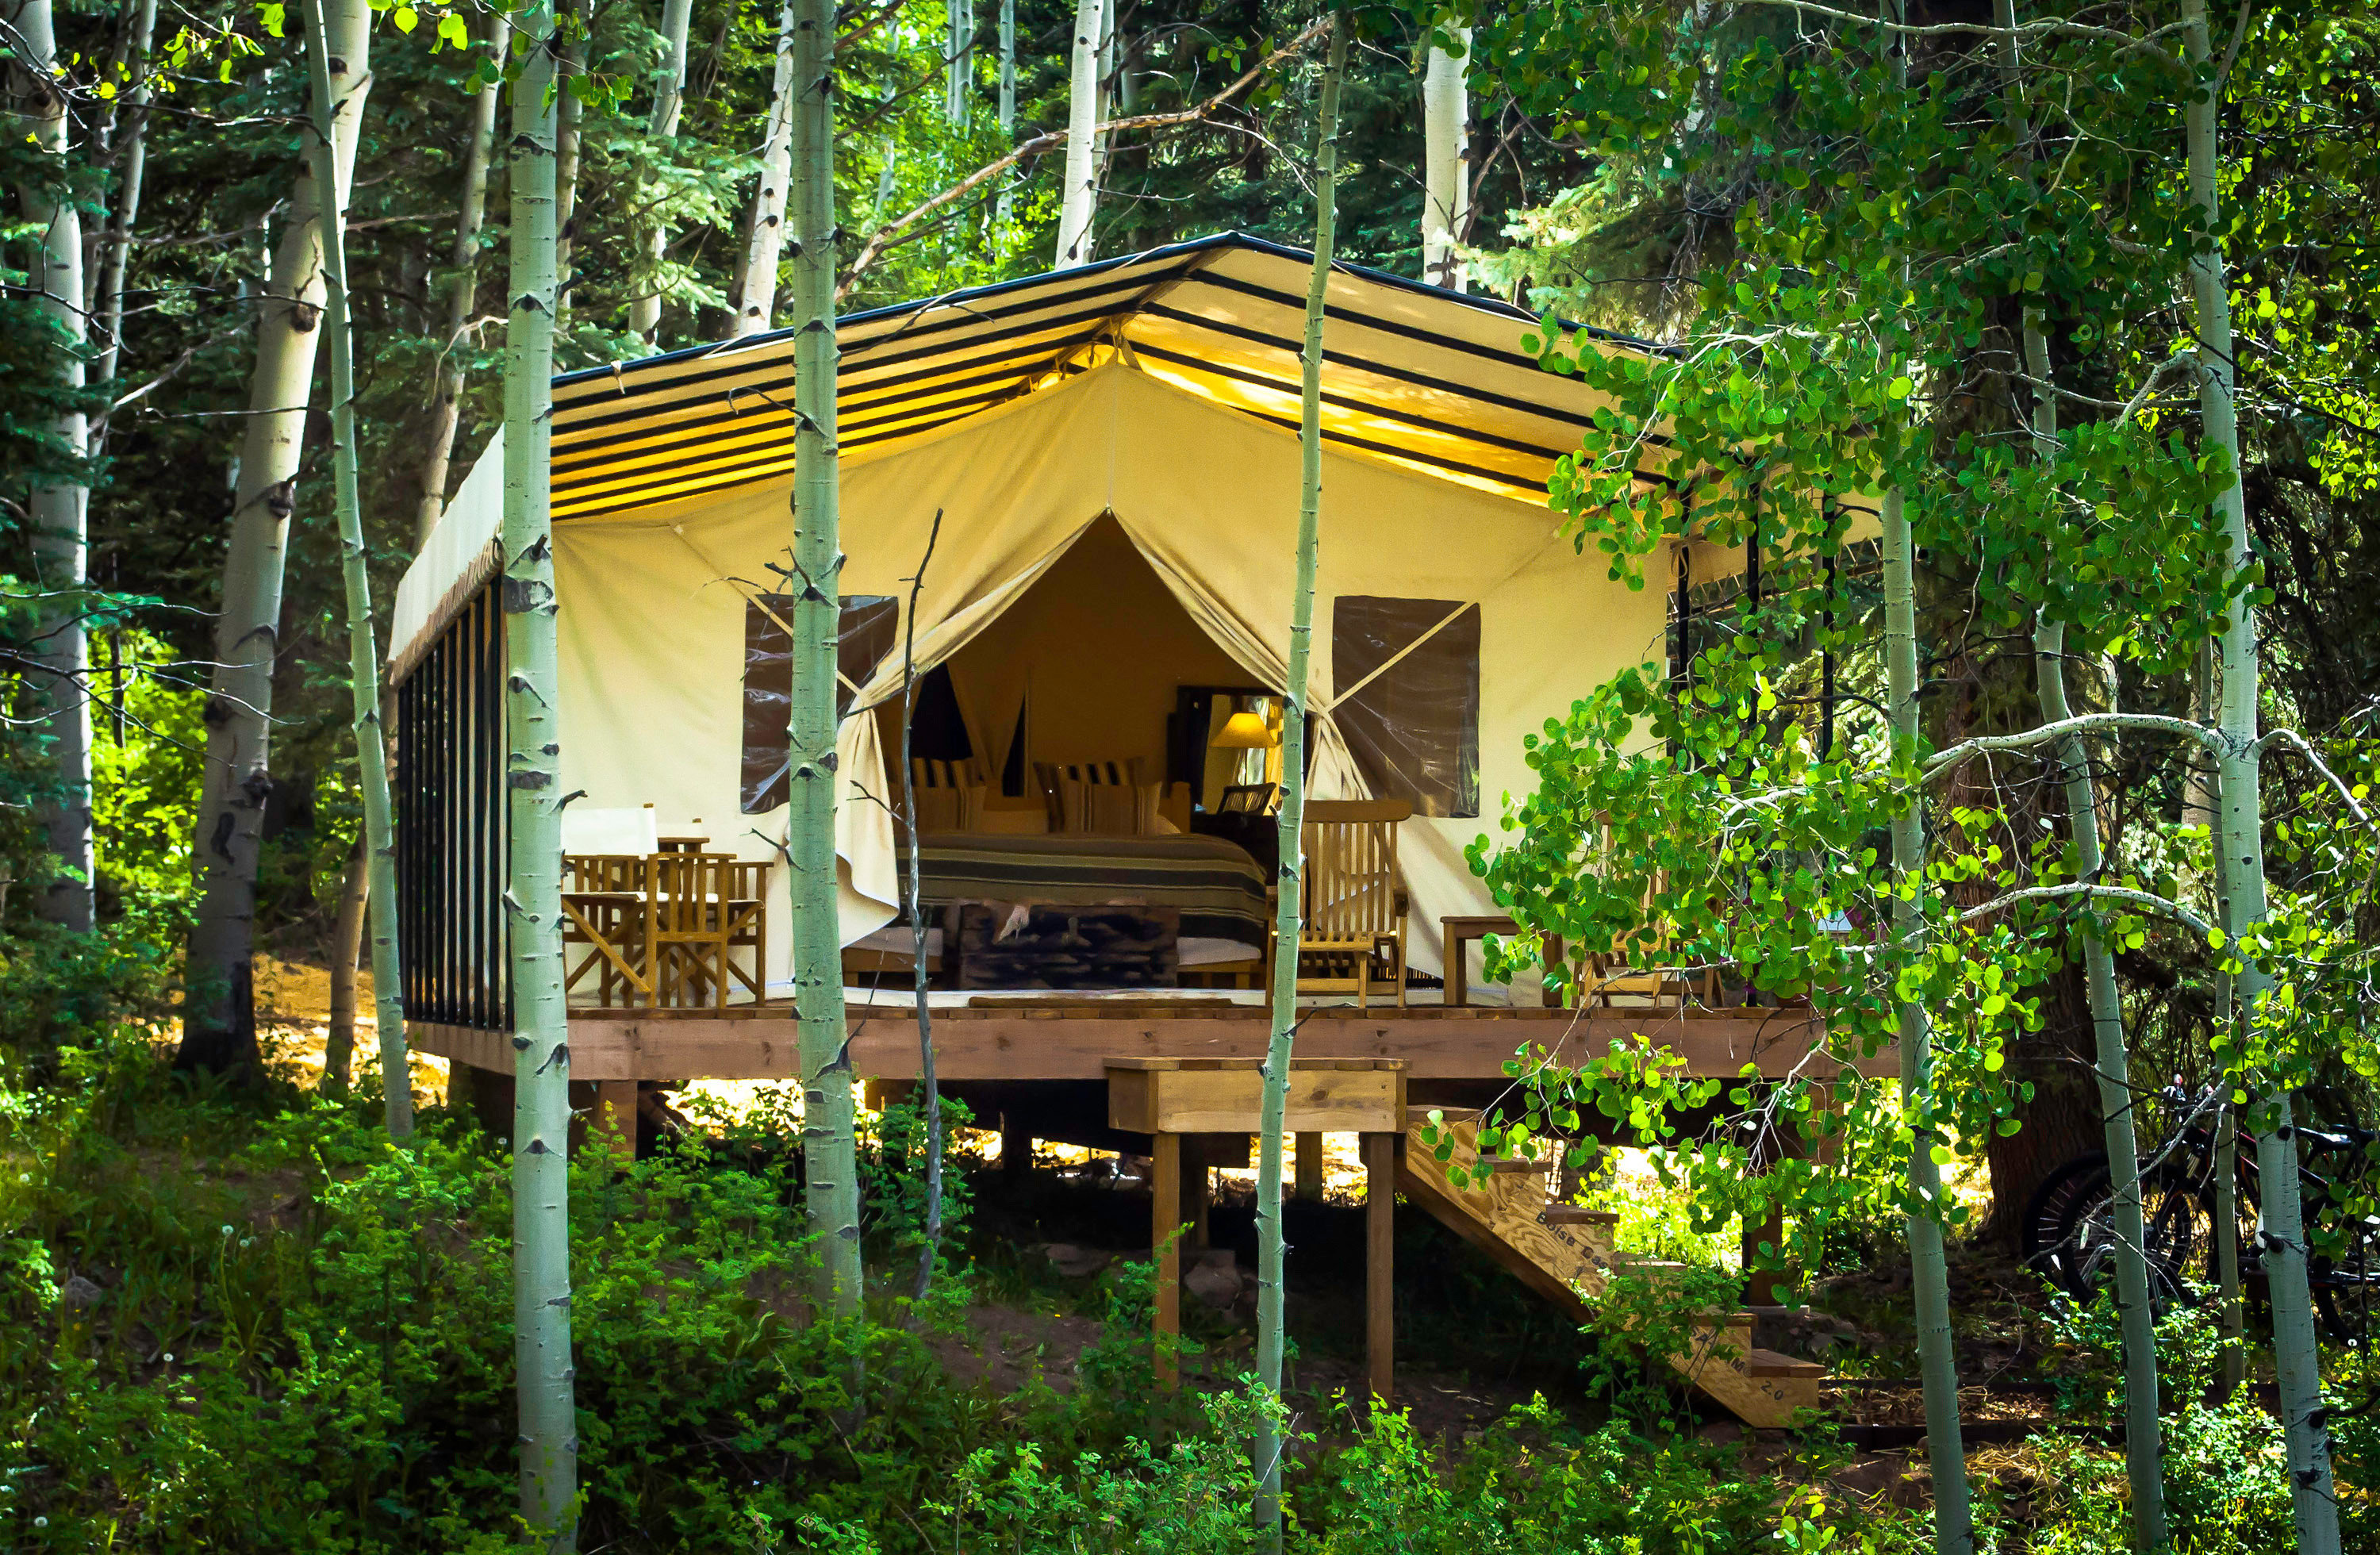 Adventure Bedroom Country Forest Glamping Mountains Outdoors + Adventure Rustic Weekend Getaways Wellness tree outdoor habitat natural environment house building Jungle Resort hut temple log cabin outdoor structure rainforest estate shrine shinto shrine tree house Garden area wood wooded